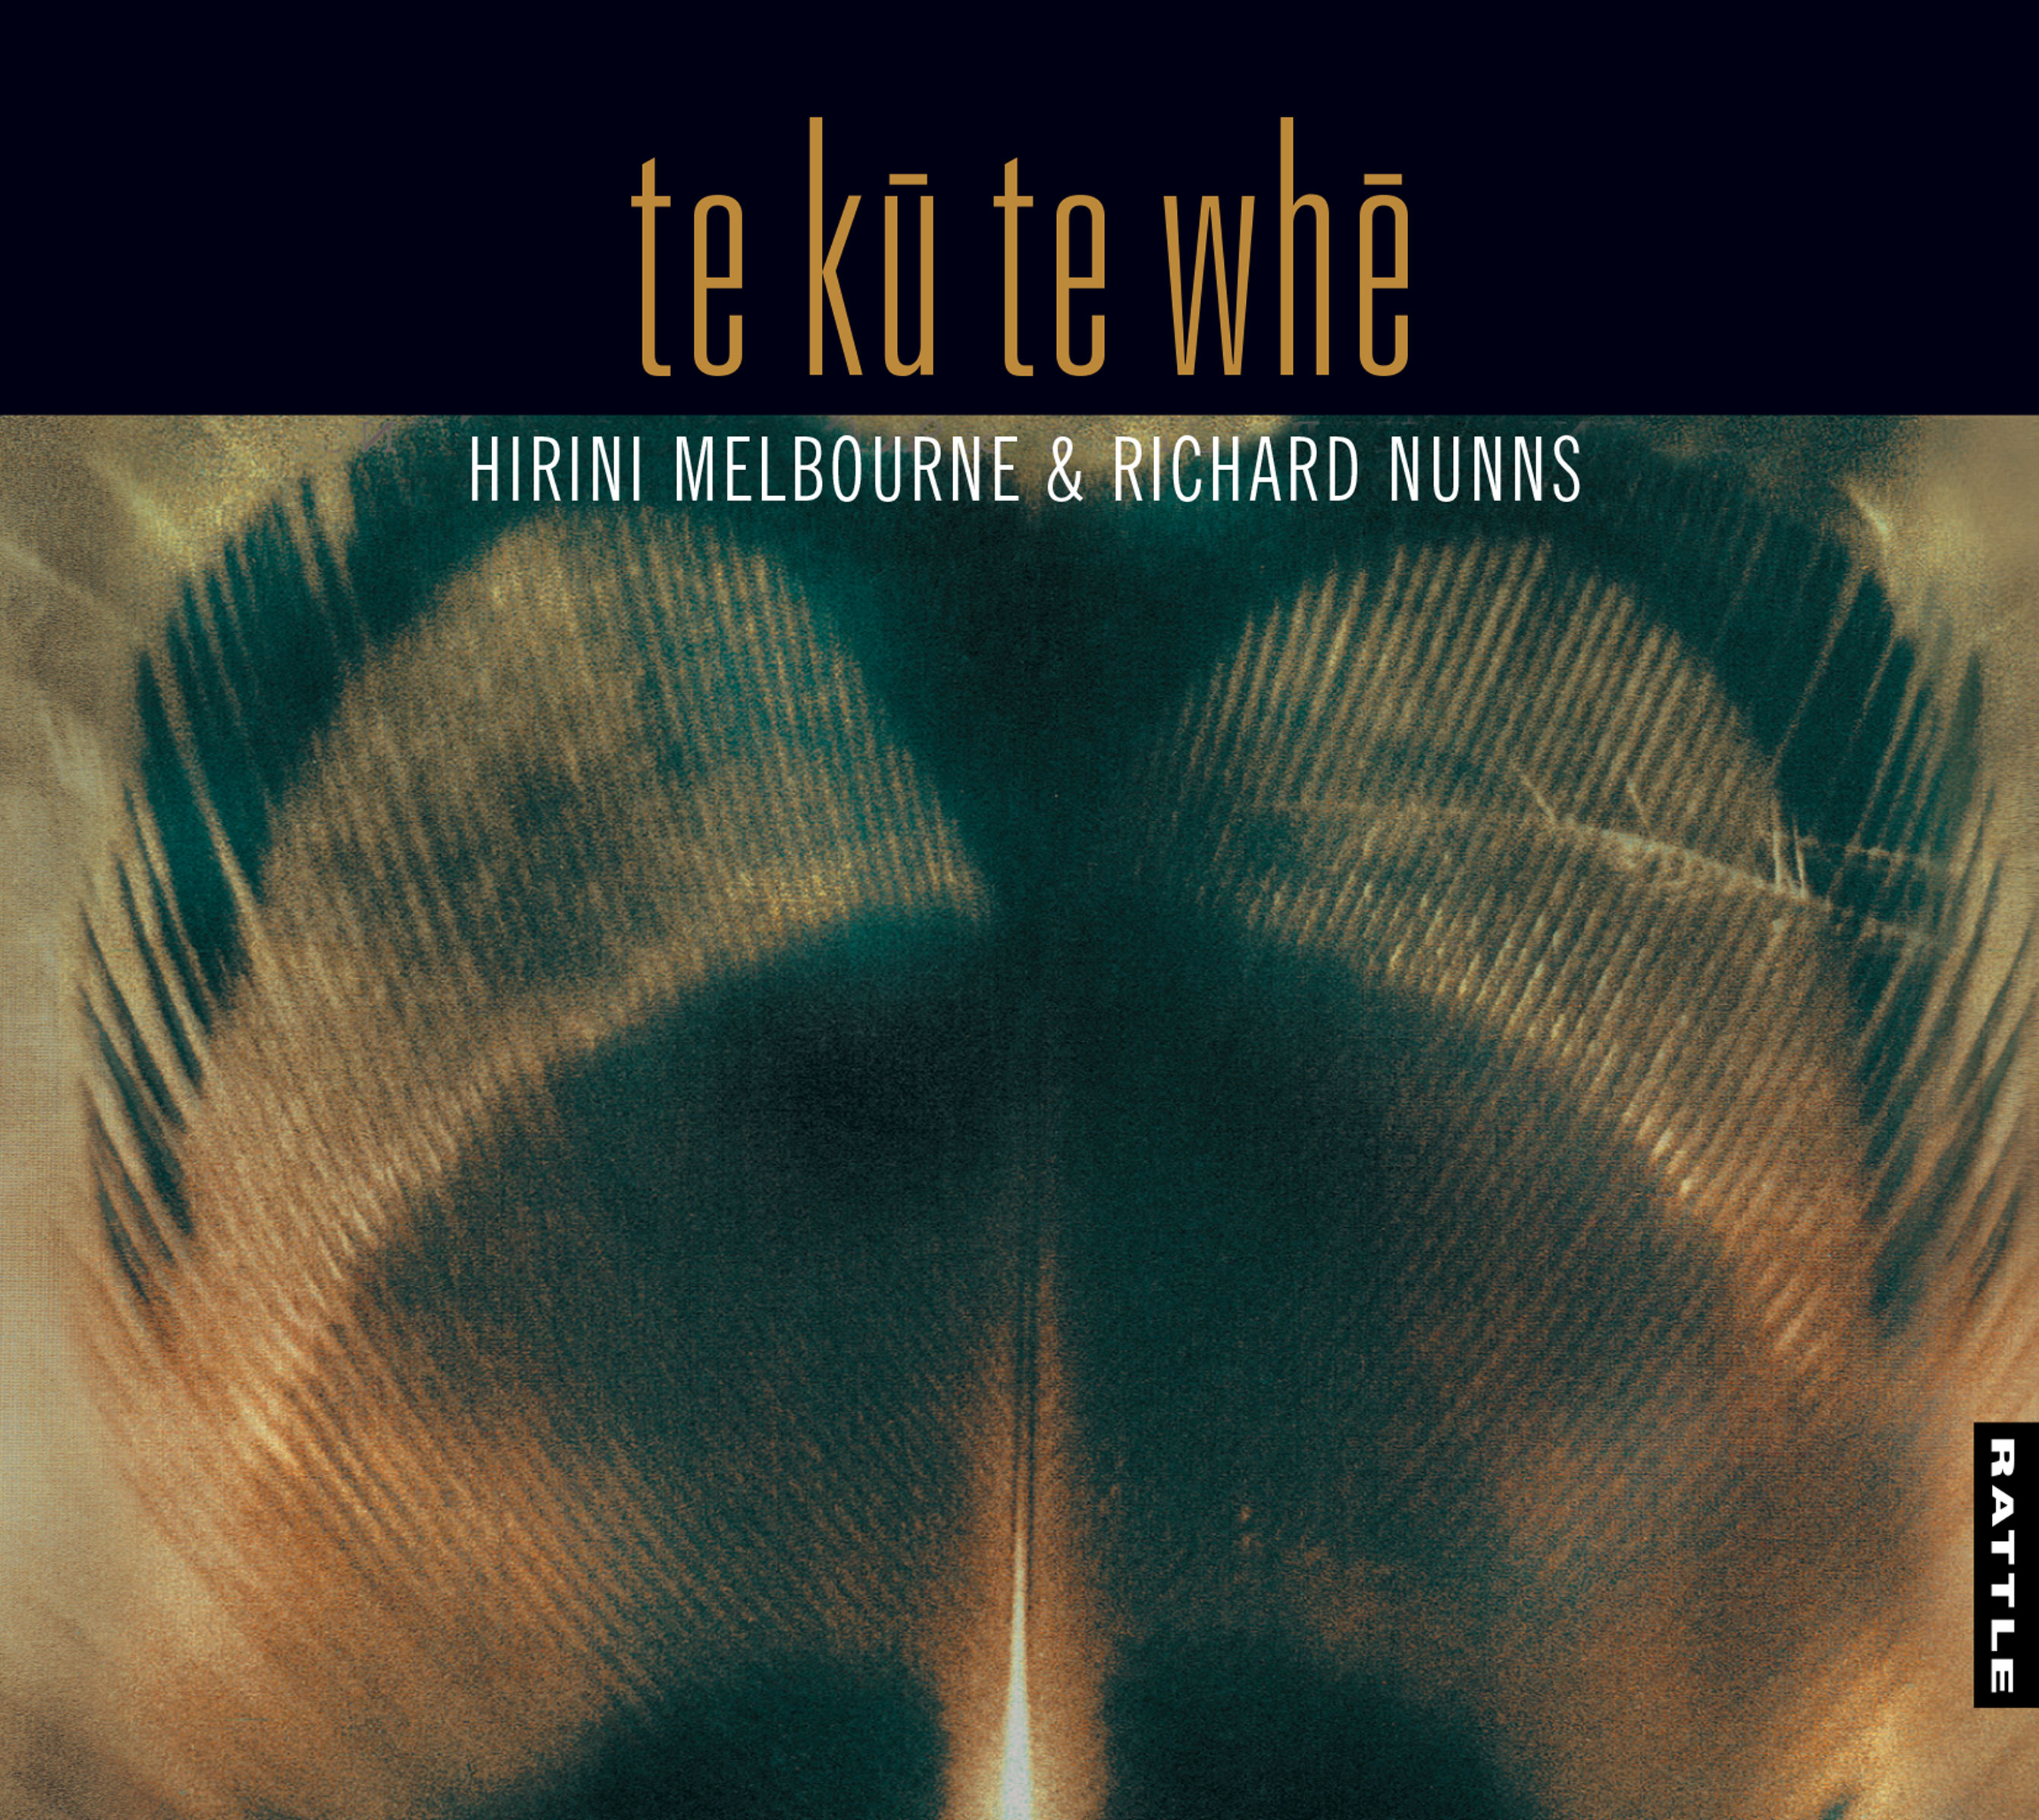 Hirini Melbourne and Richard Nunns | Te Kū Te Whē - downloadable MP3 ALBUM